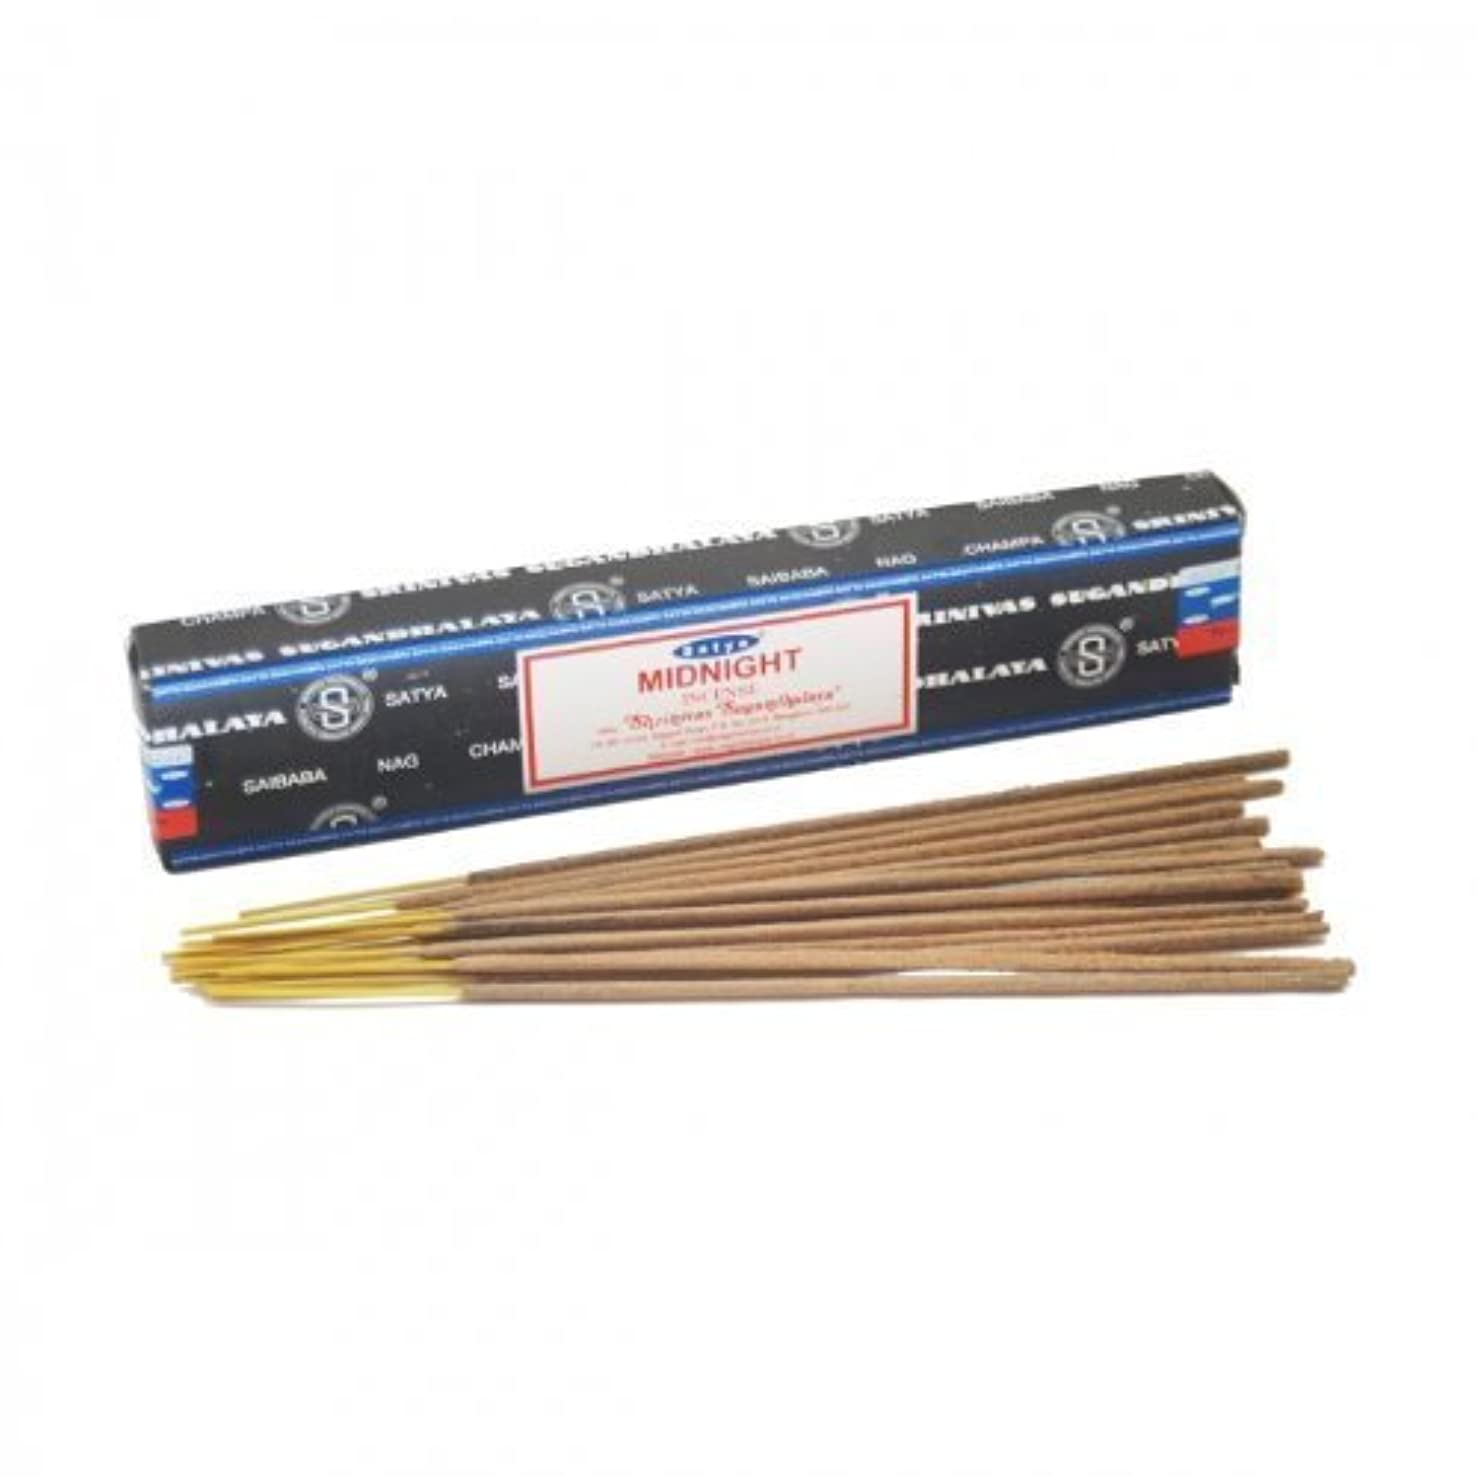 胸市場スティーブンソンSatya Satya Sai Baba Midnight Nag Champa Incense Sticks (15 Sticks) by Satya